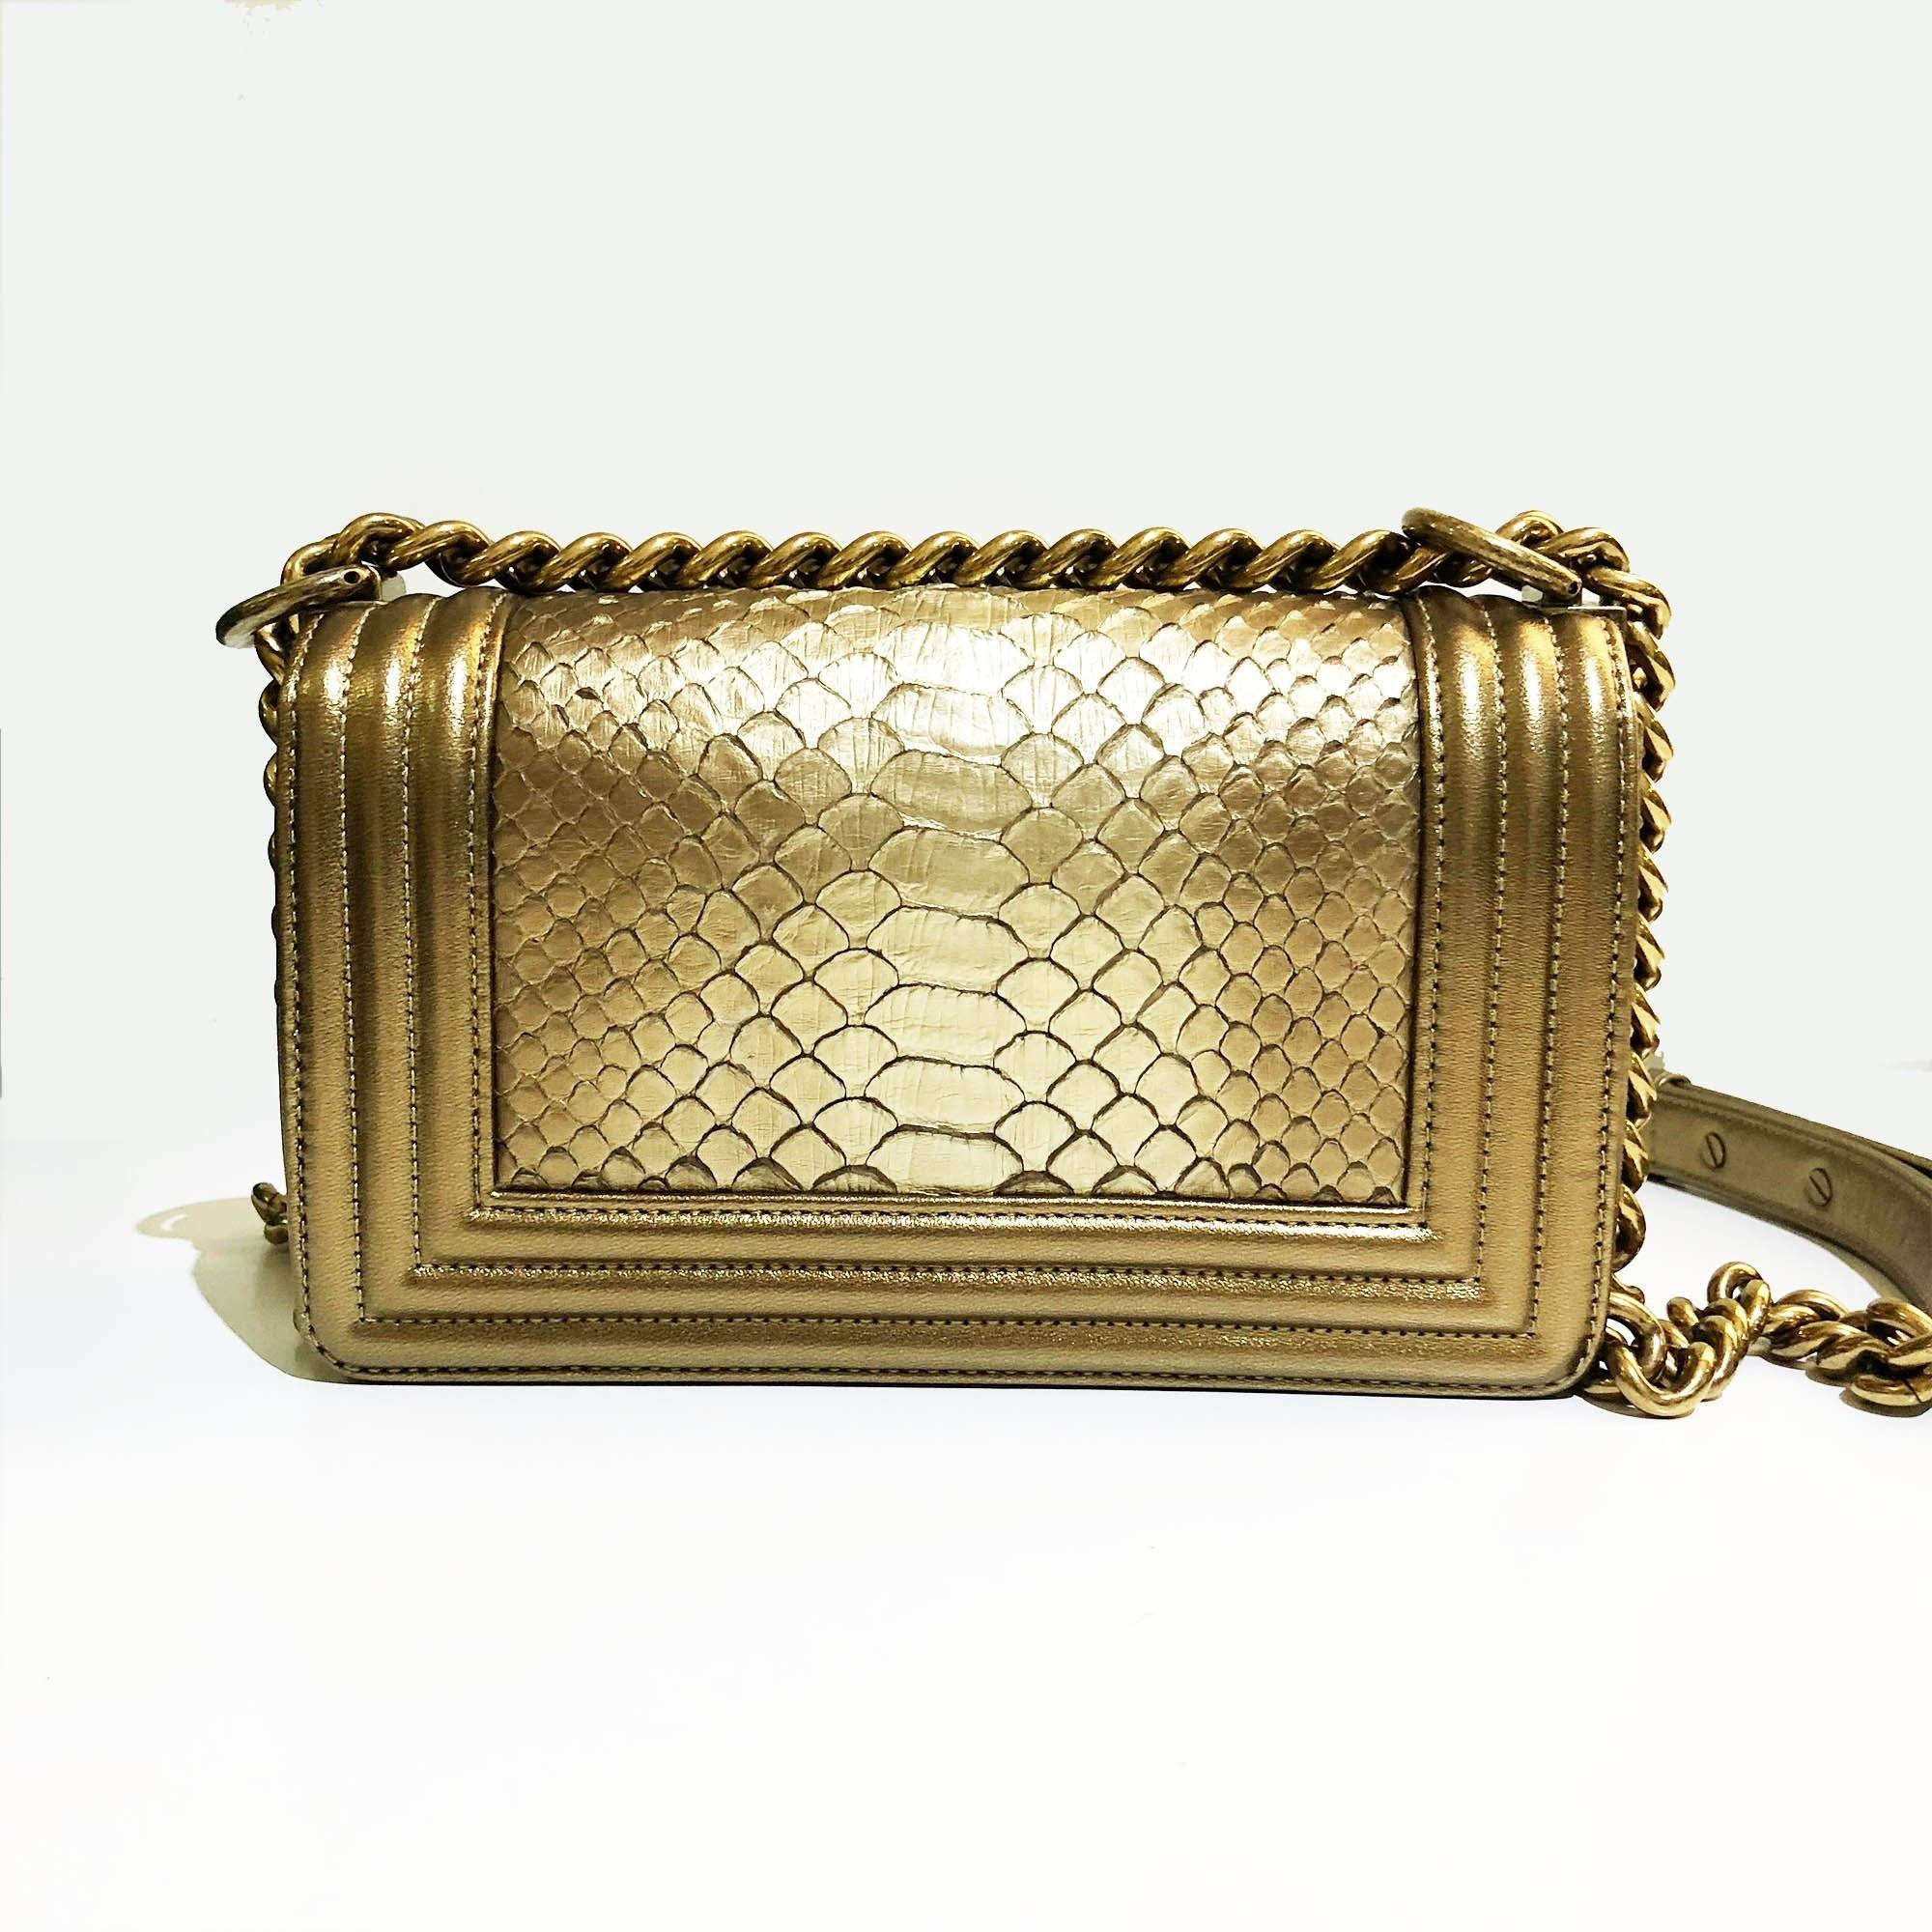 Chanel Le Boy Small Gold Bag